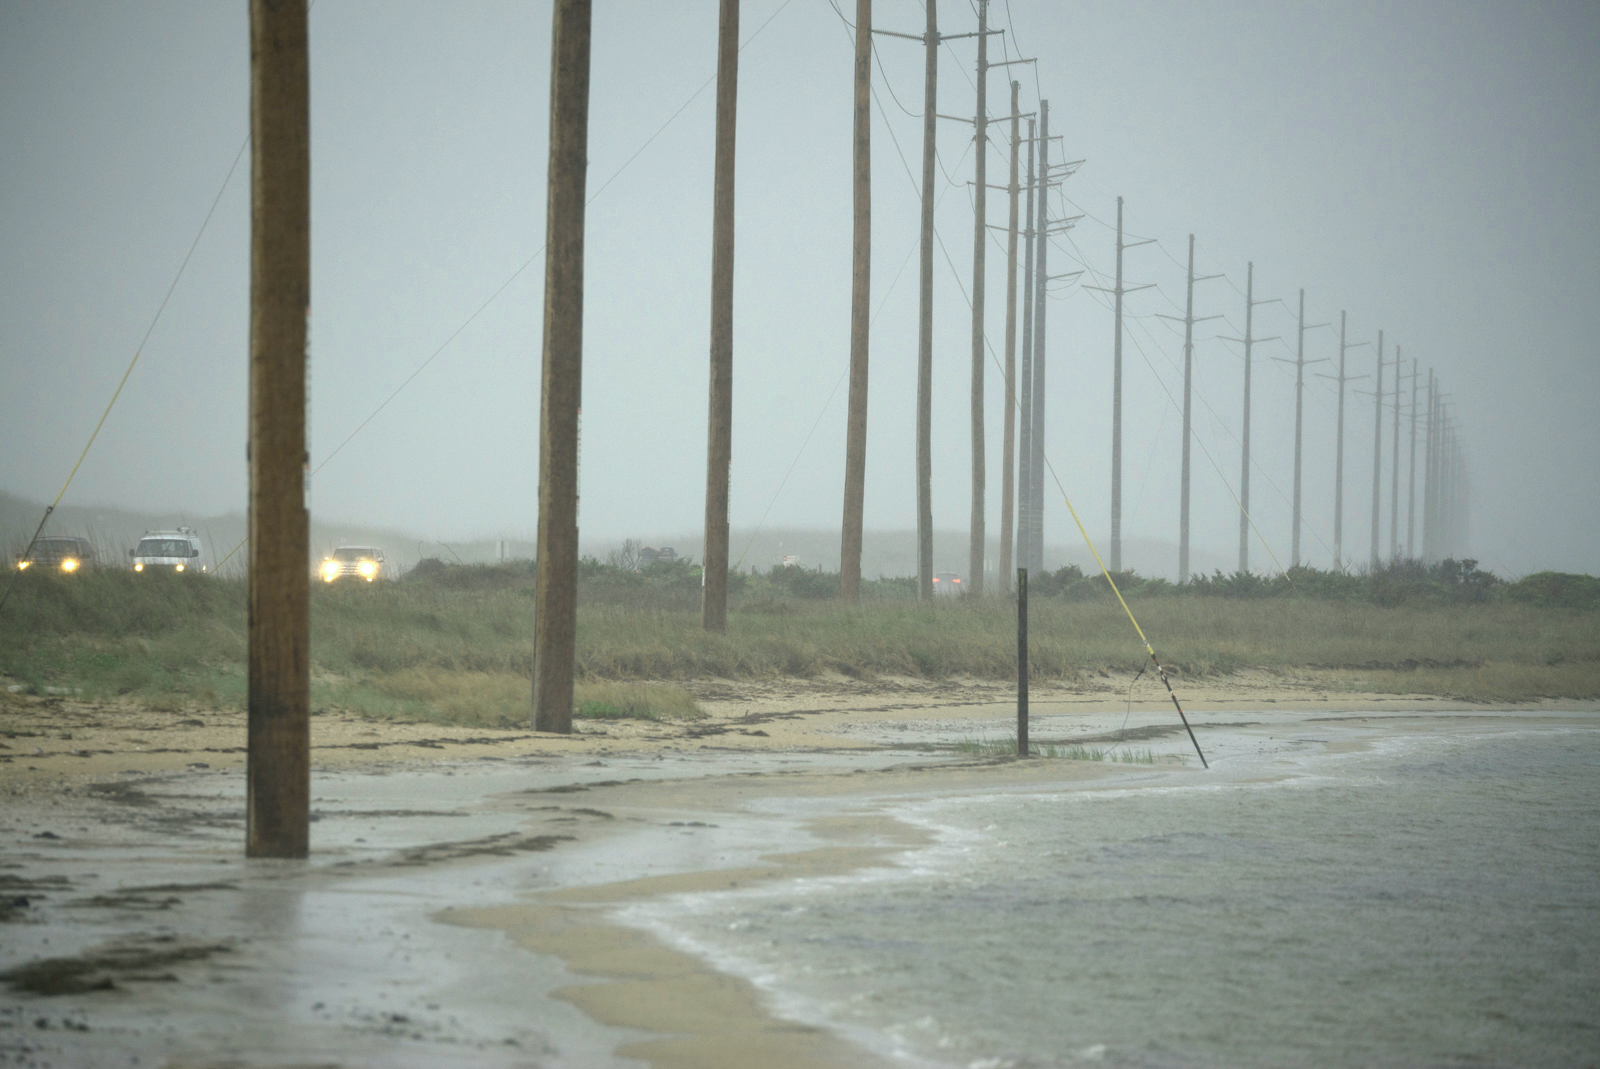 Receding shoreline threaten utility poles and Highway 12 near Avon, North Carolina, at the Haulover Day Use Area of the Cape Hatteras National Seashore.